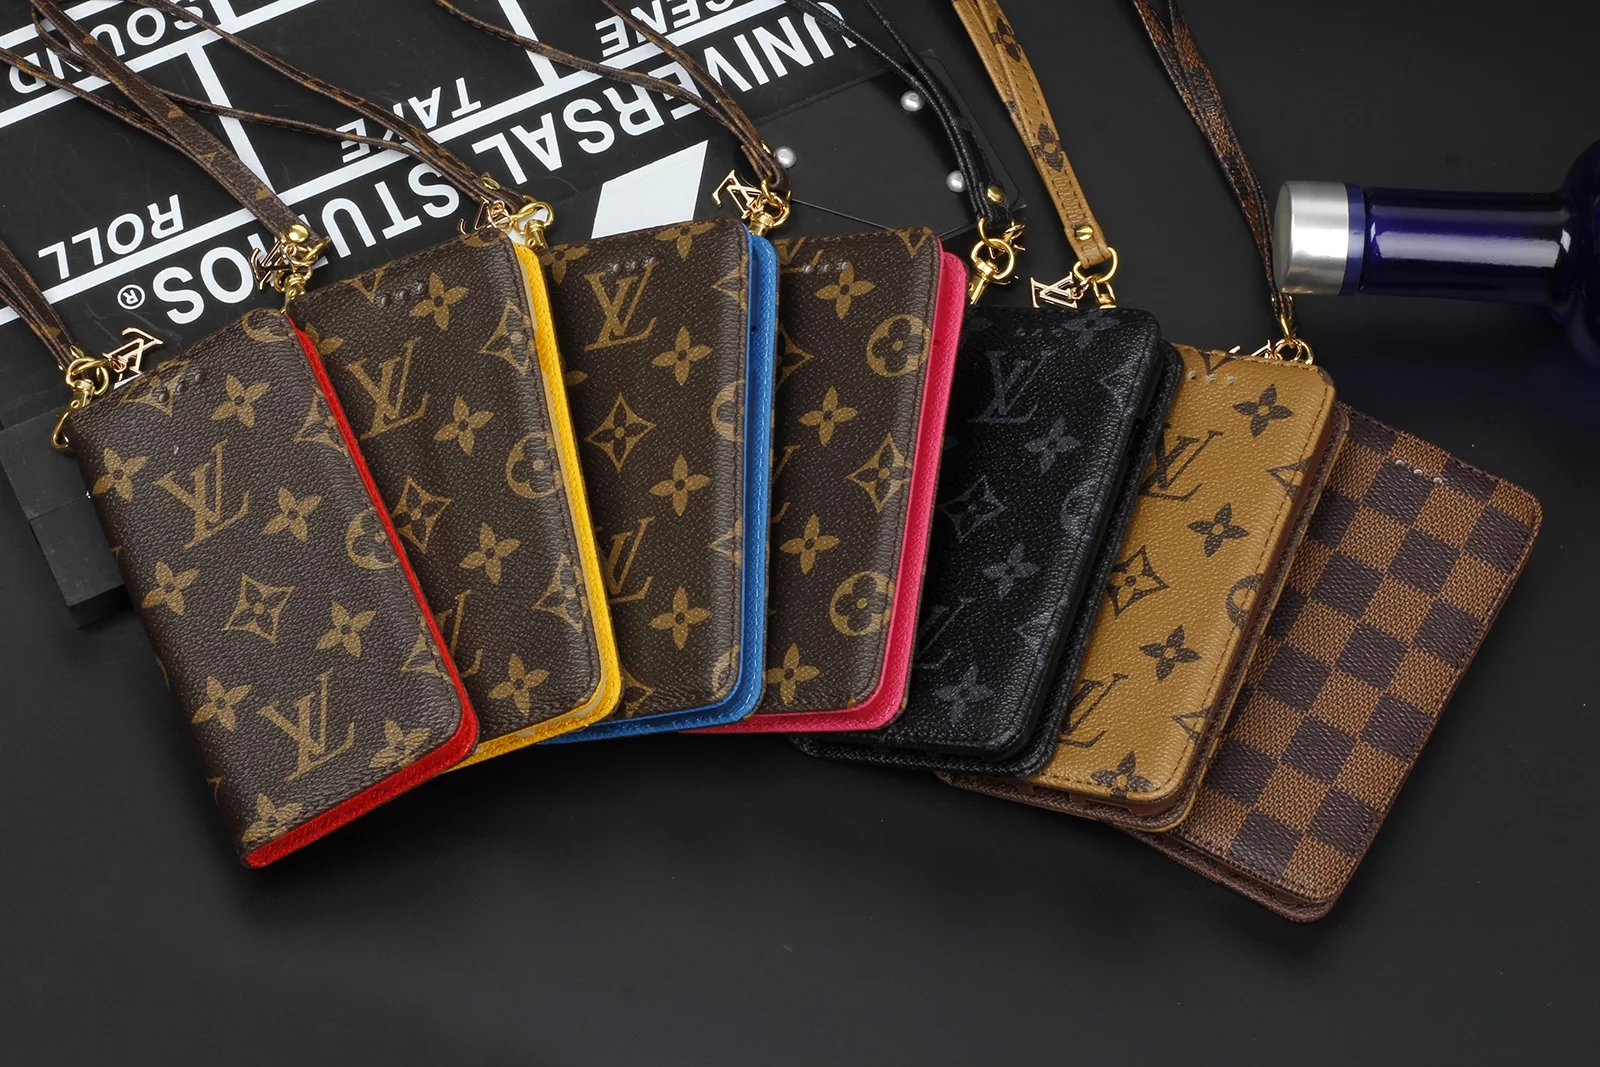 iphone case gestalten designer iphone hüllen Louis Vuitton iphone6 plus hülle handyhülle 6lbst bedrucken billige iphone hüllen iphone ca6 6lber machen leder cover iphone 6 Plus original apple zubehör handy ledertasche 6lbst gestalten